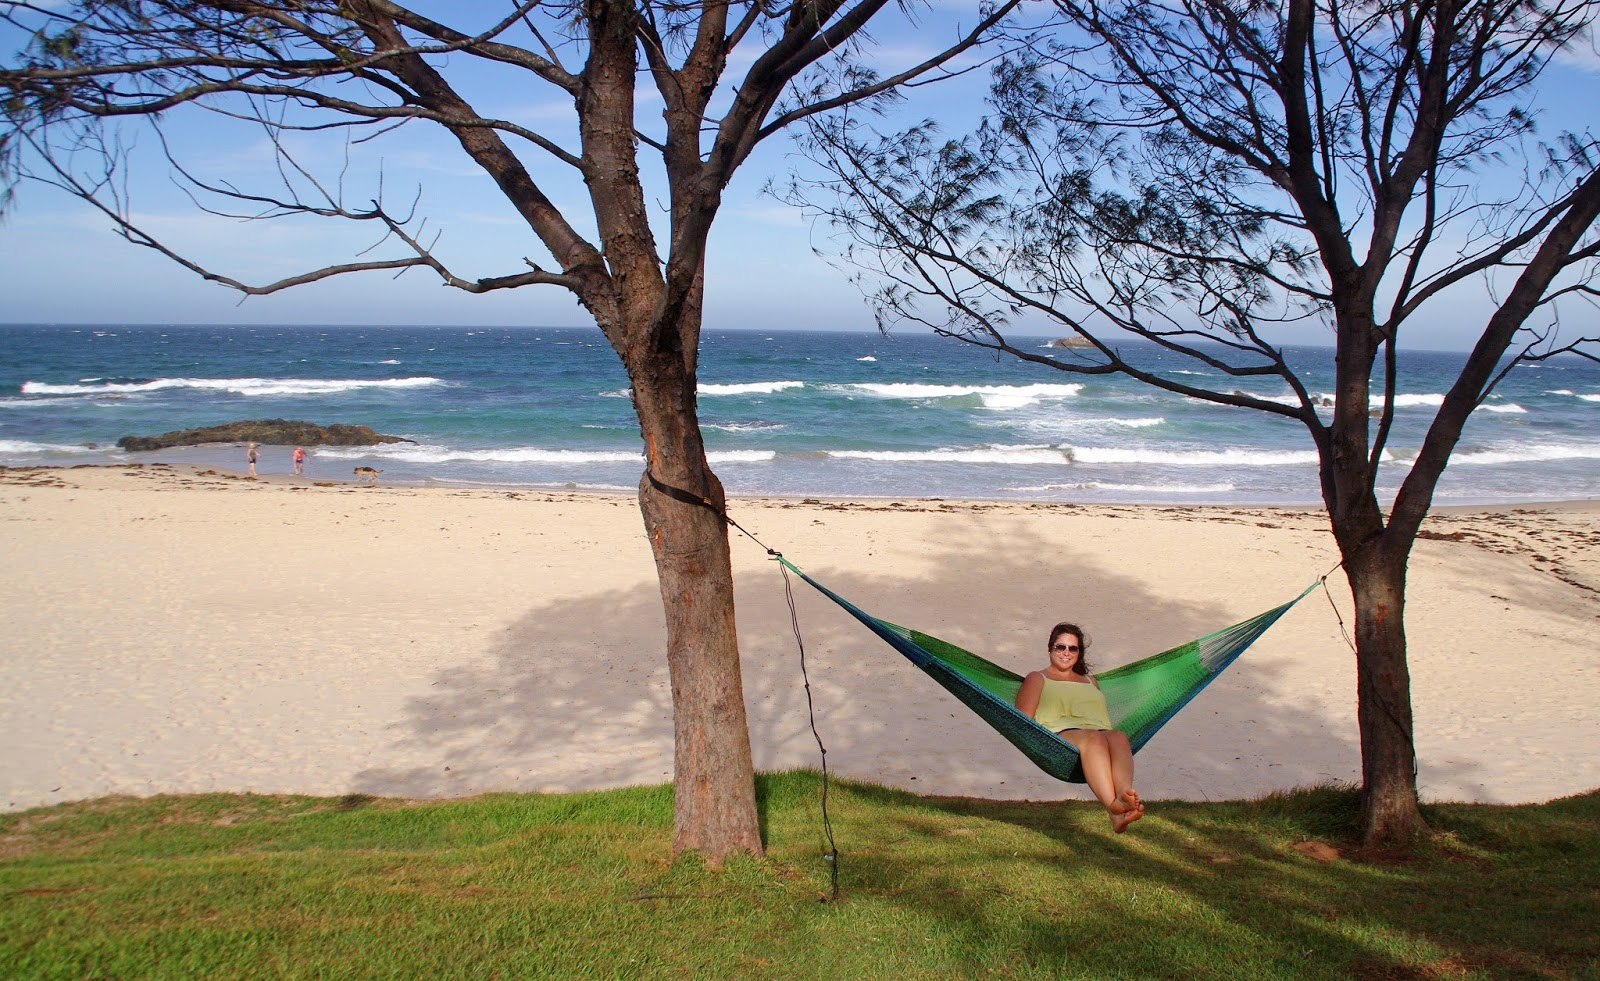 West Coast Hammocks: The Ultimate in Luxury Hammocks